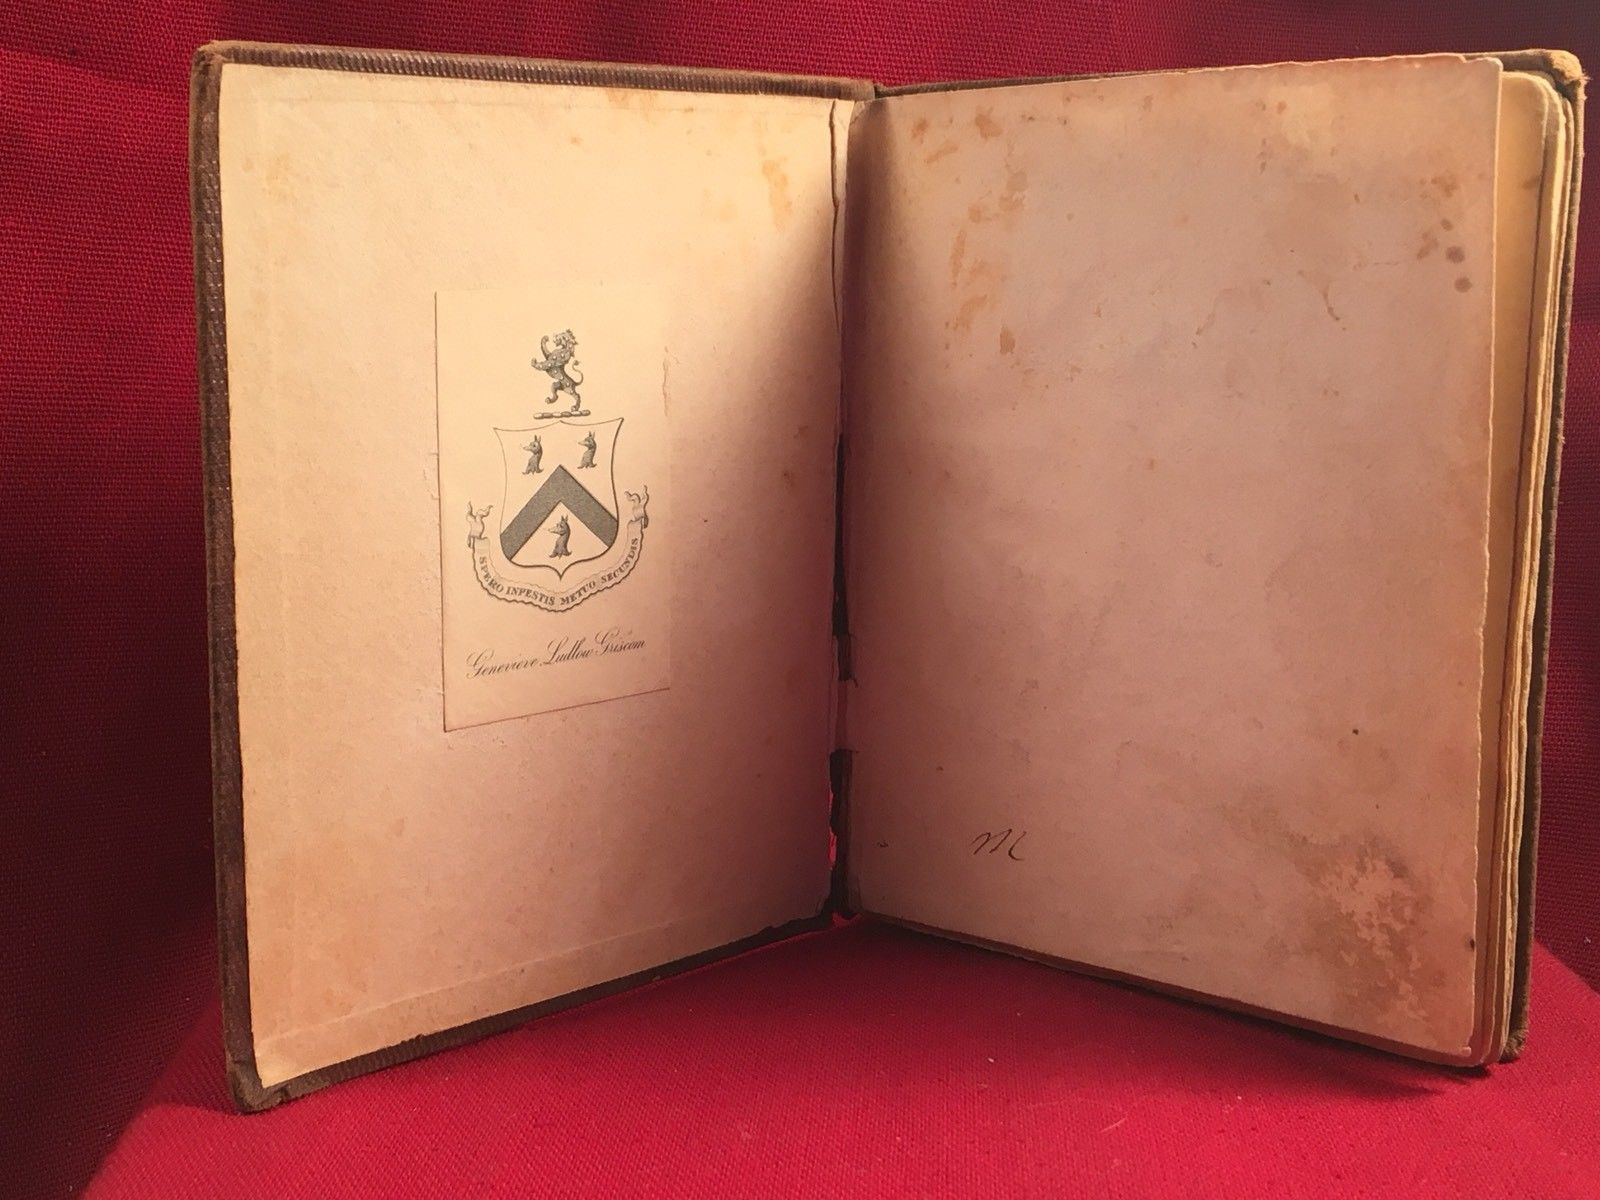 Mother Goose's Melodies The Only Pure Edition, early rare printing, ca. 1843